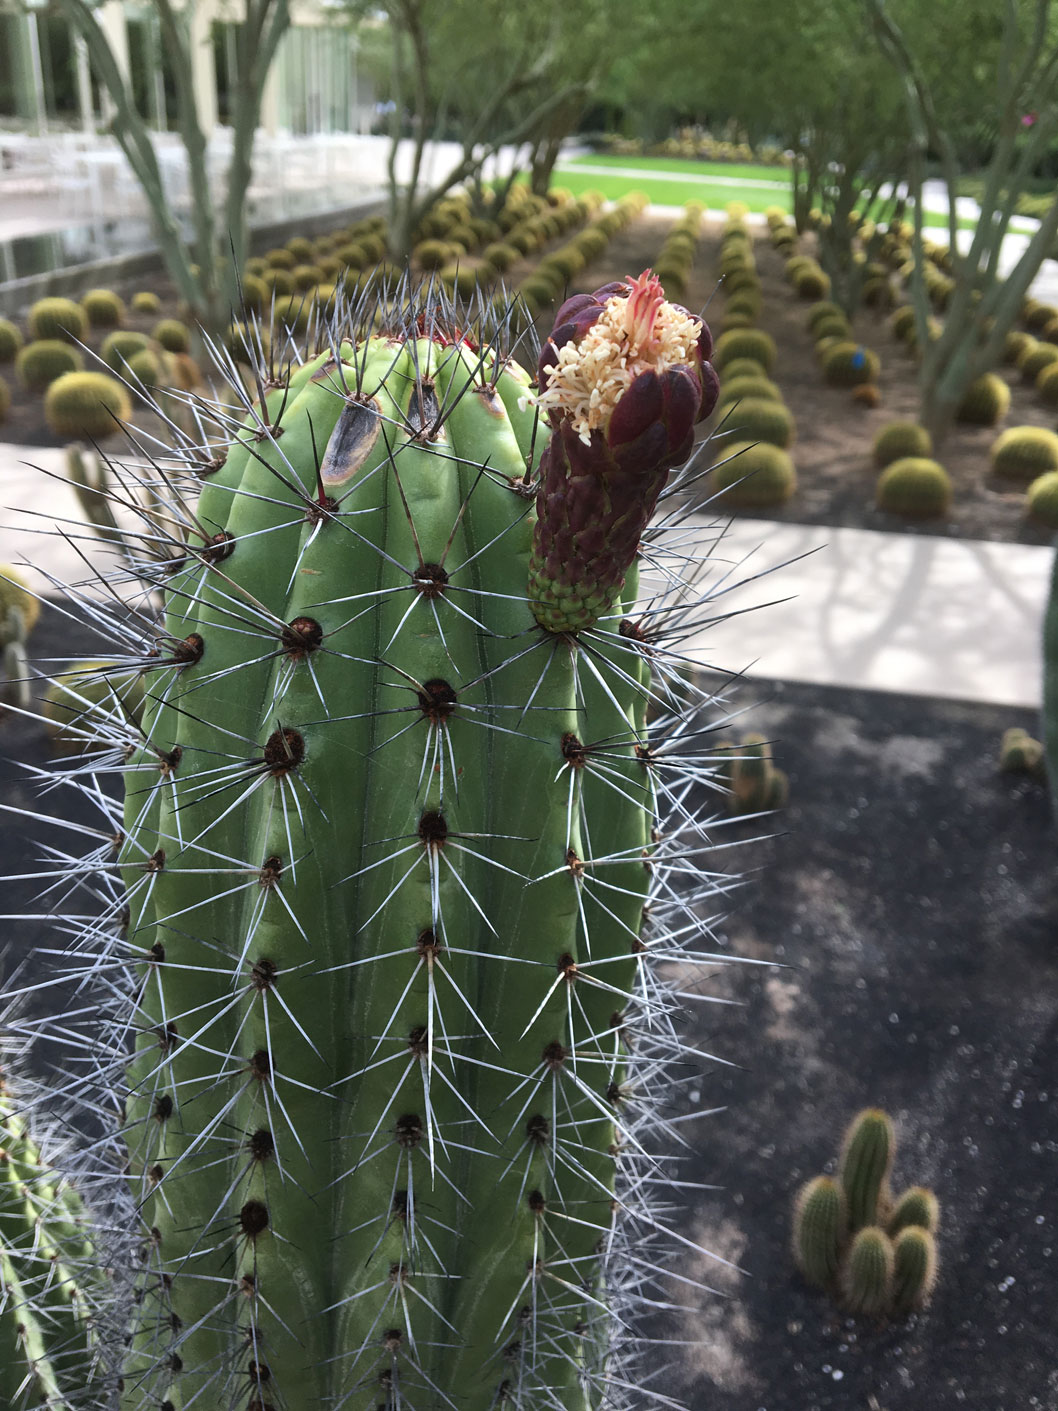 An emerging bud of the Organ Pipe Cactus.